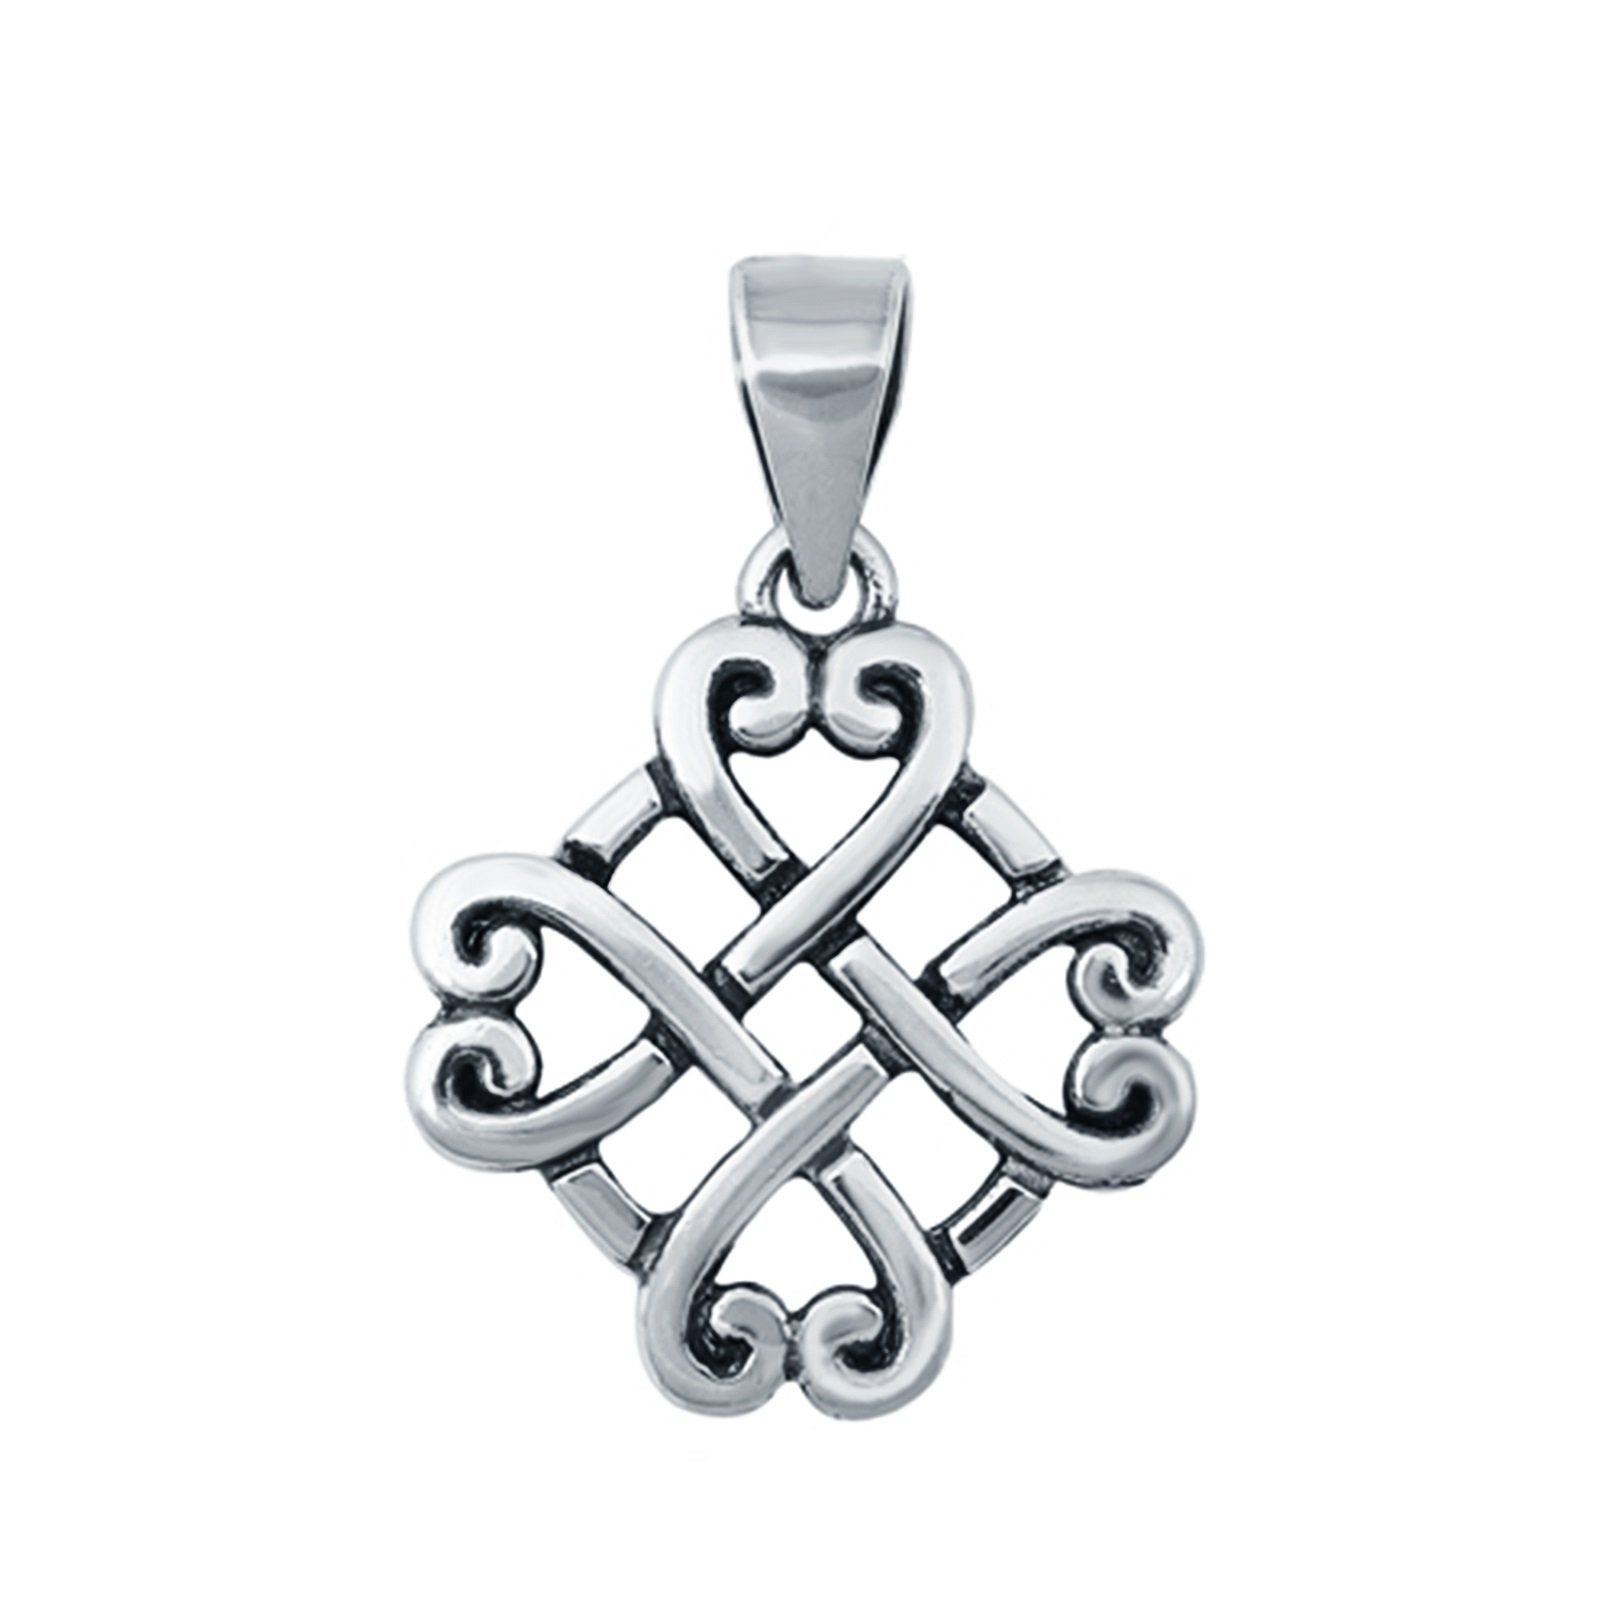 Fashion Jewelry Silver Celtic Charm Pendant 925 Sterling Silver (14mm)